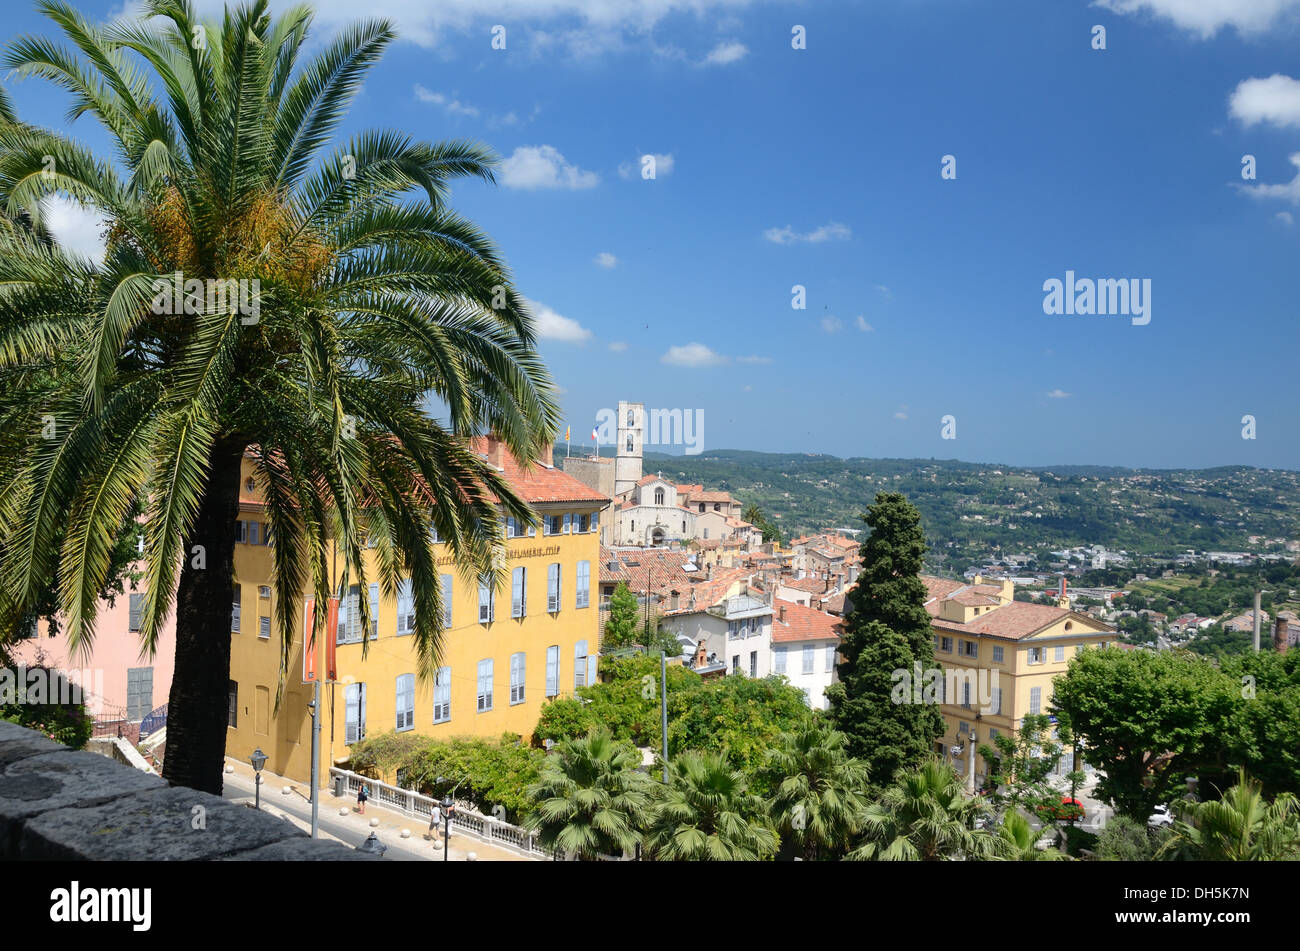 View over the International Perfume Museum and Grasse Old Town Alpes-Maritimes France - Stock Image